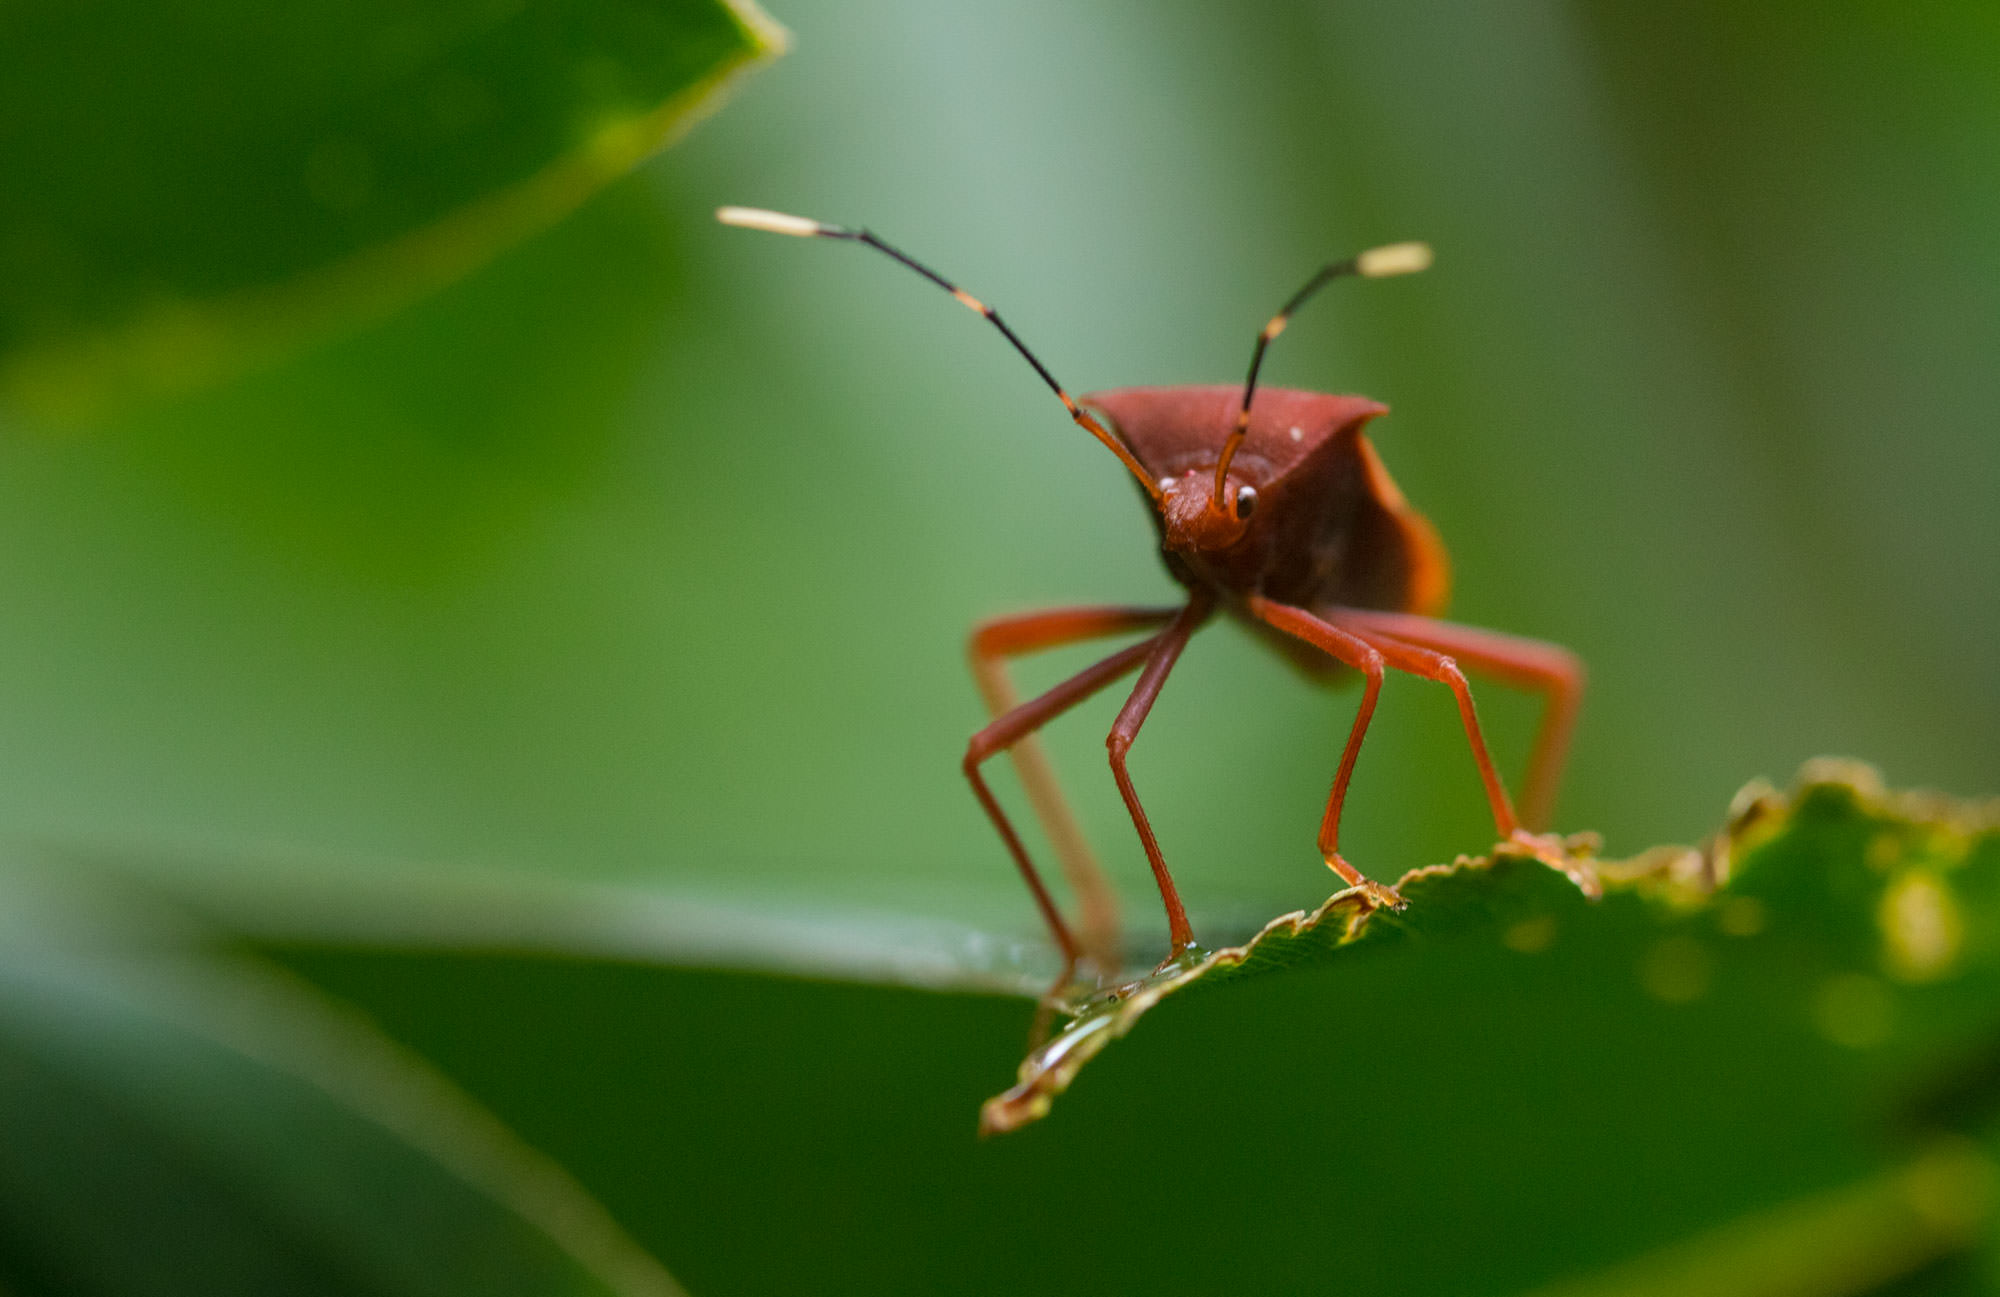 Coreidae Leaf-footed Bug at the Tambopata Research Center